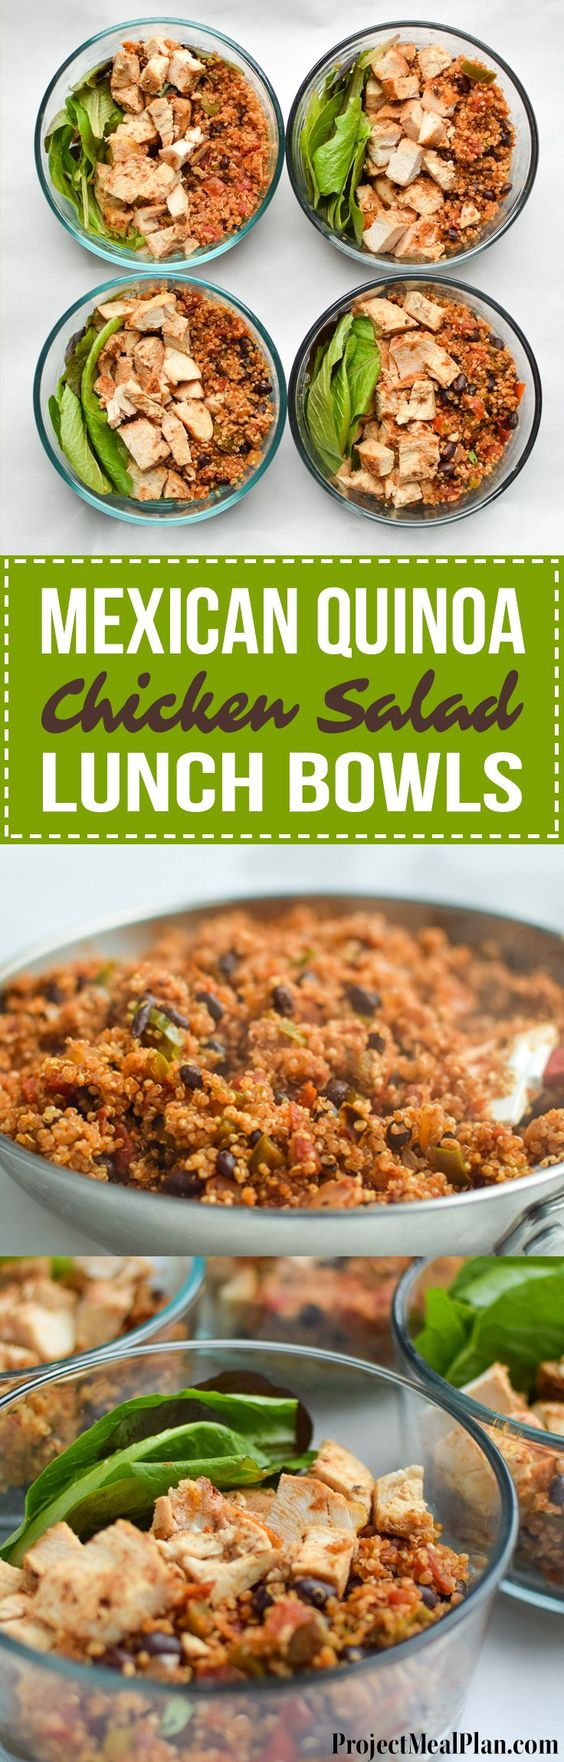 Mexican Quinoa Chicken Salad Lunch Bowls Mexican Quinoa Chicken Salad Lunch Bowls